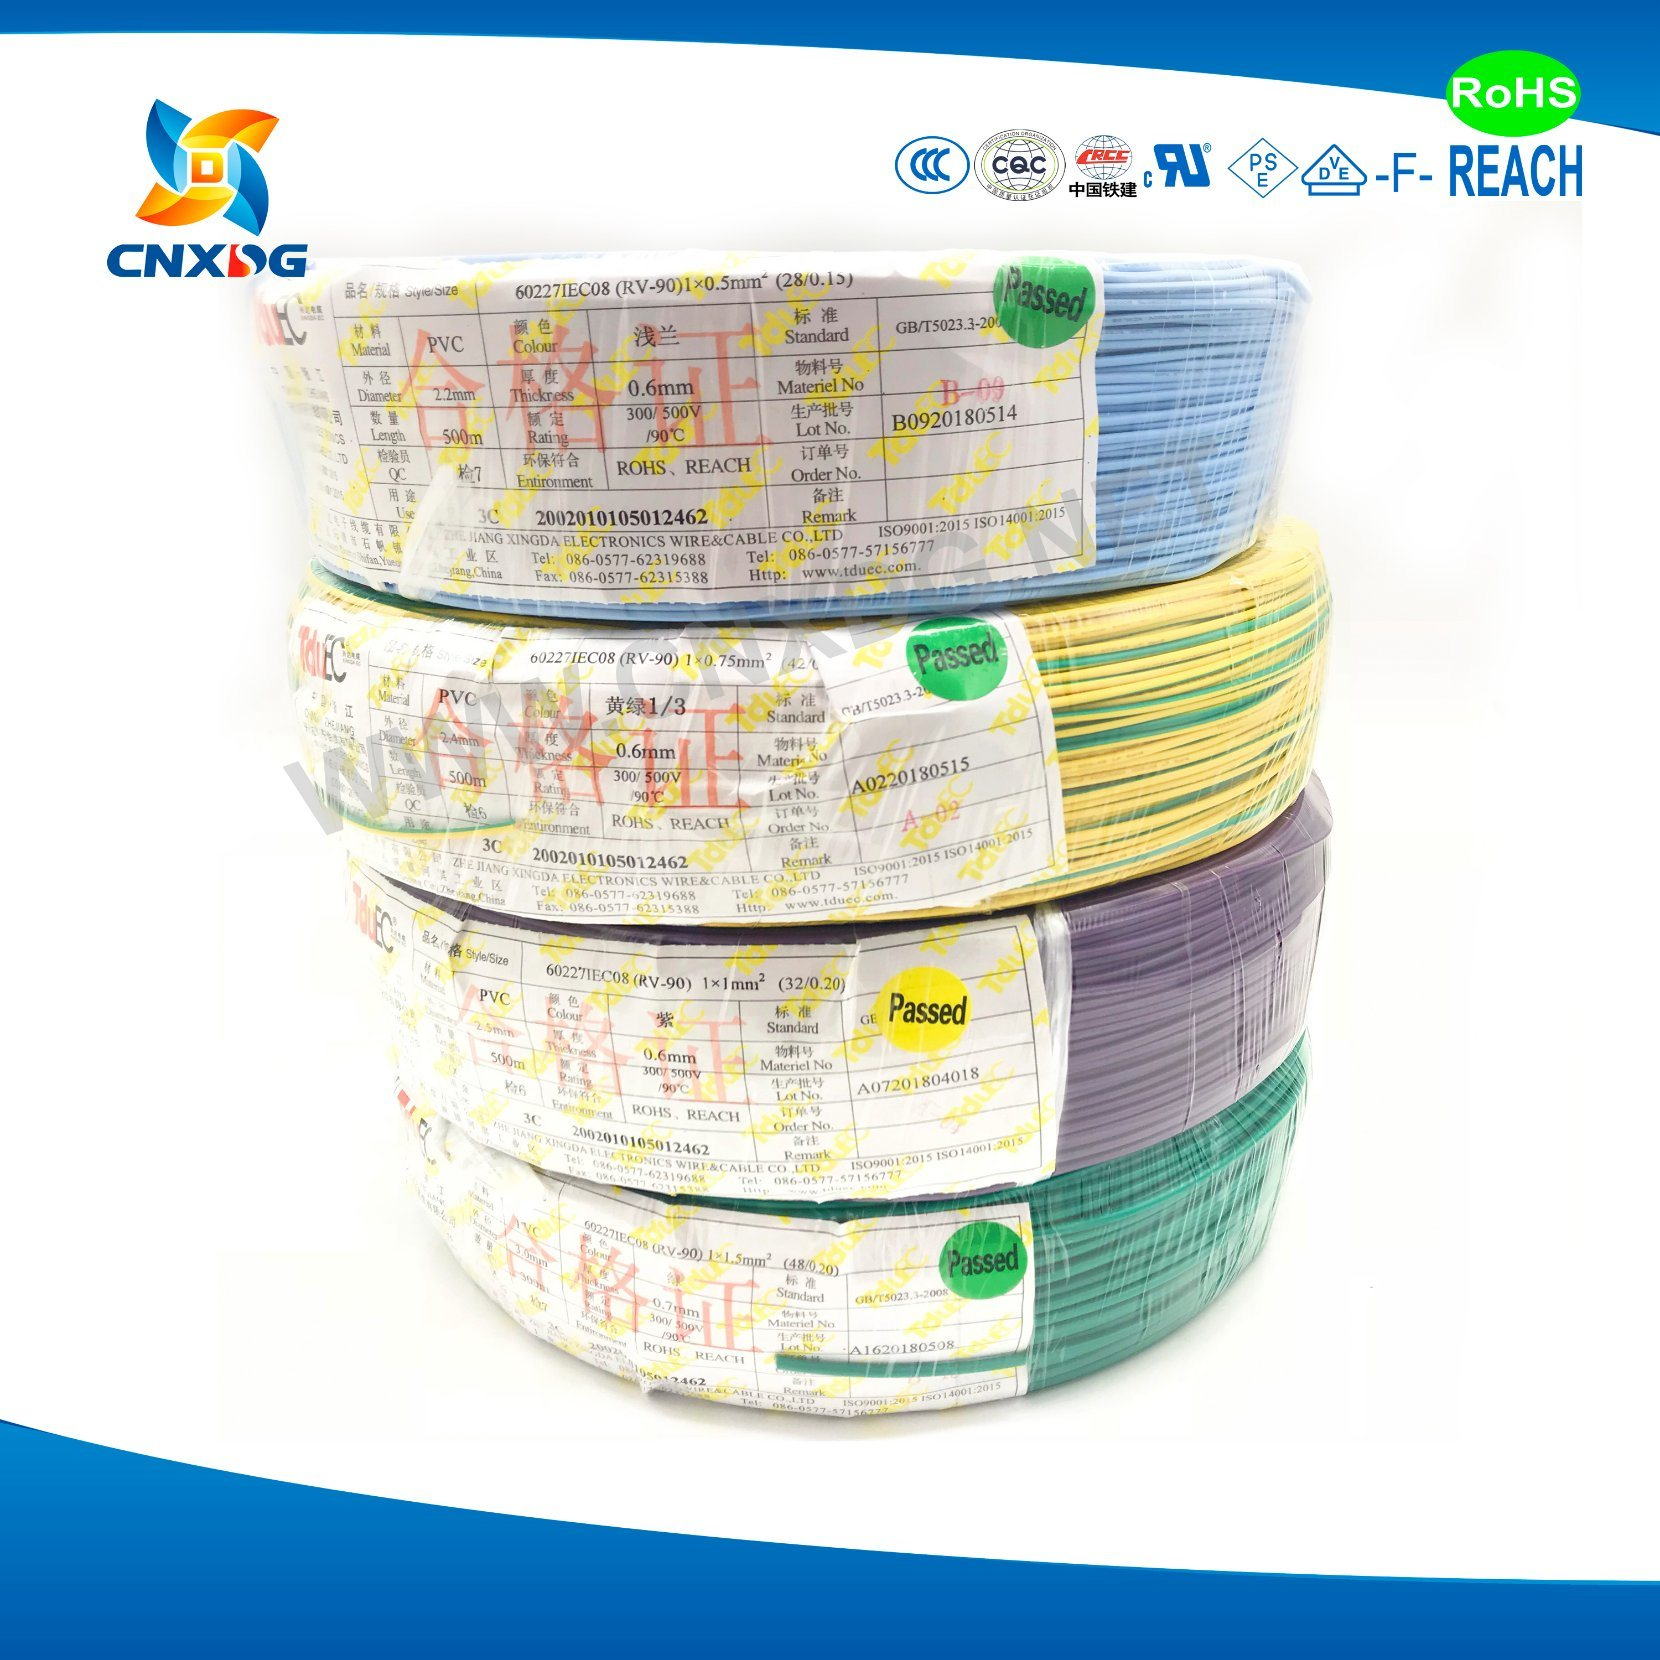 China Non Sheathed Cable And Wire Ccc 60227 Iec 08 Rv 90 10 Mm2 Harness Sheathing